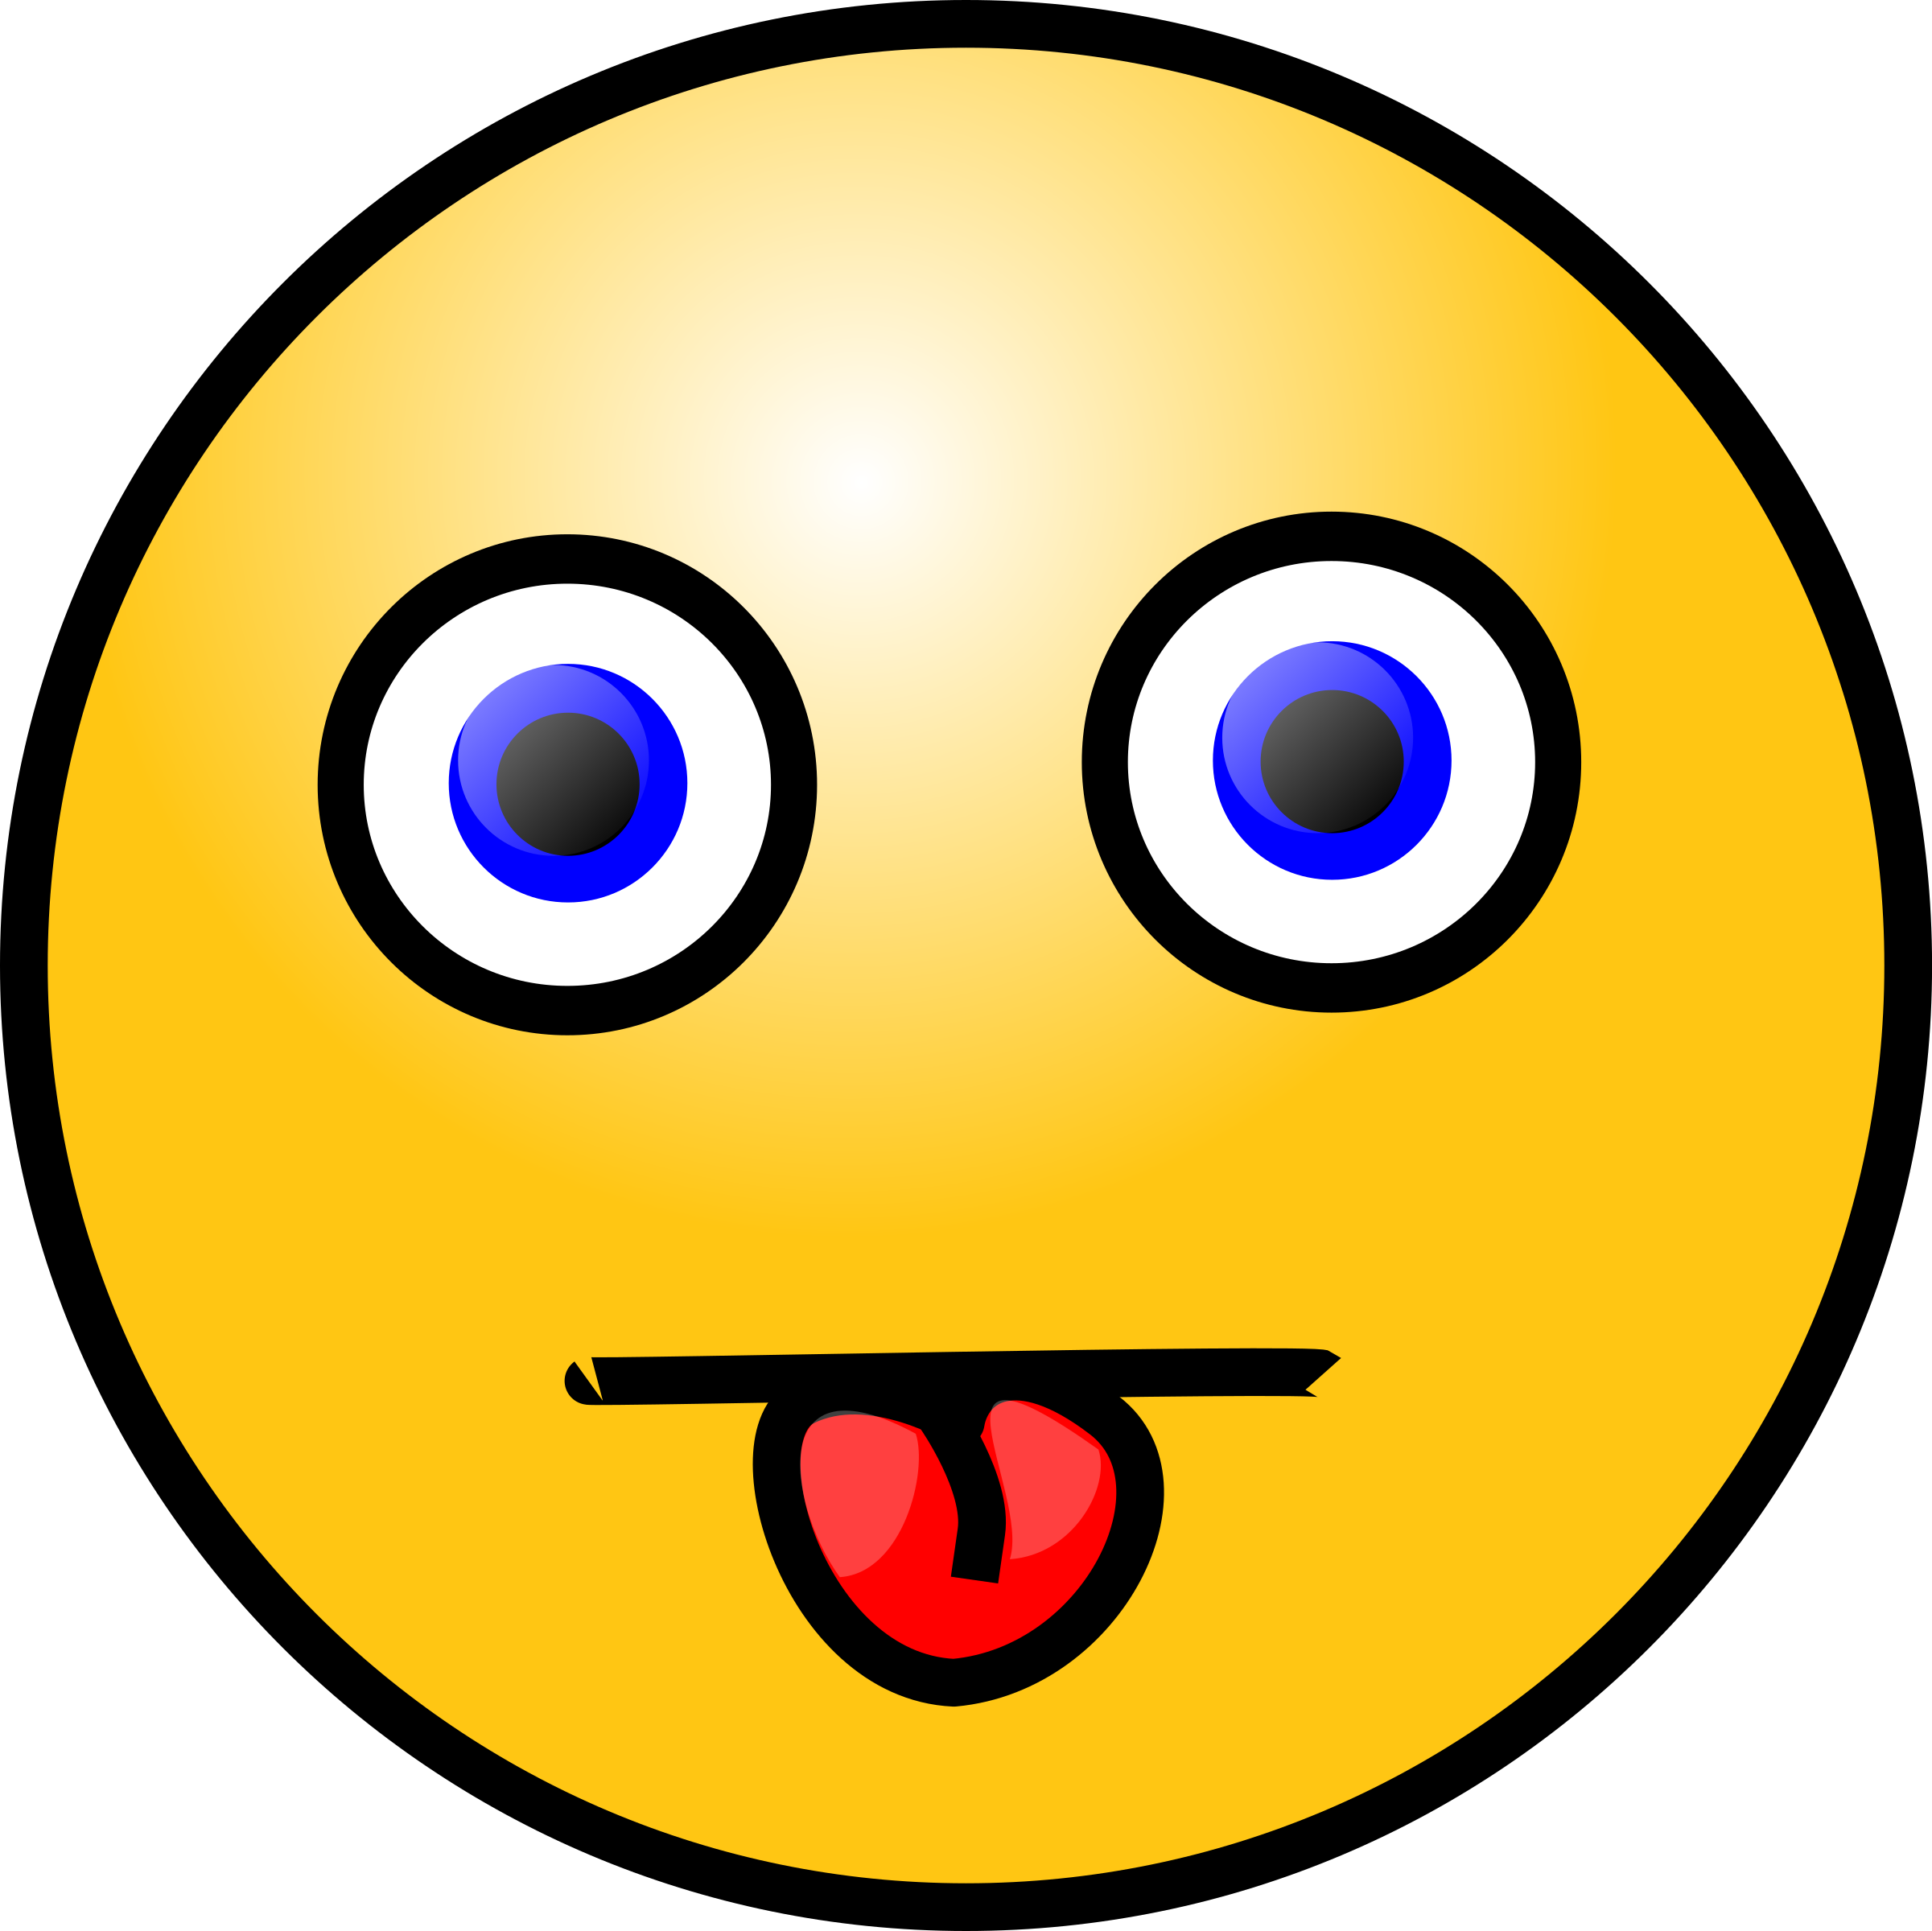 Person tongue sticking out png. Emoticons icons free and